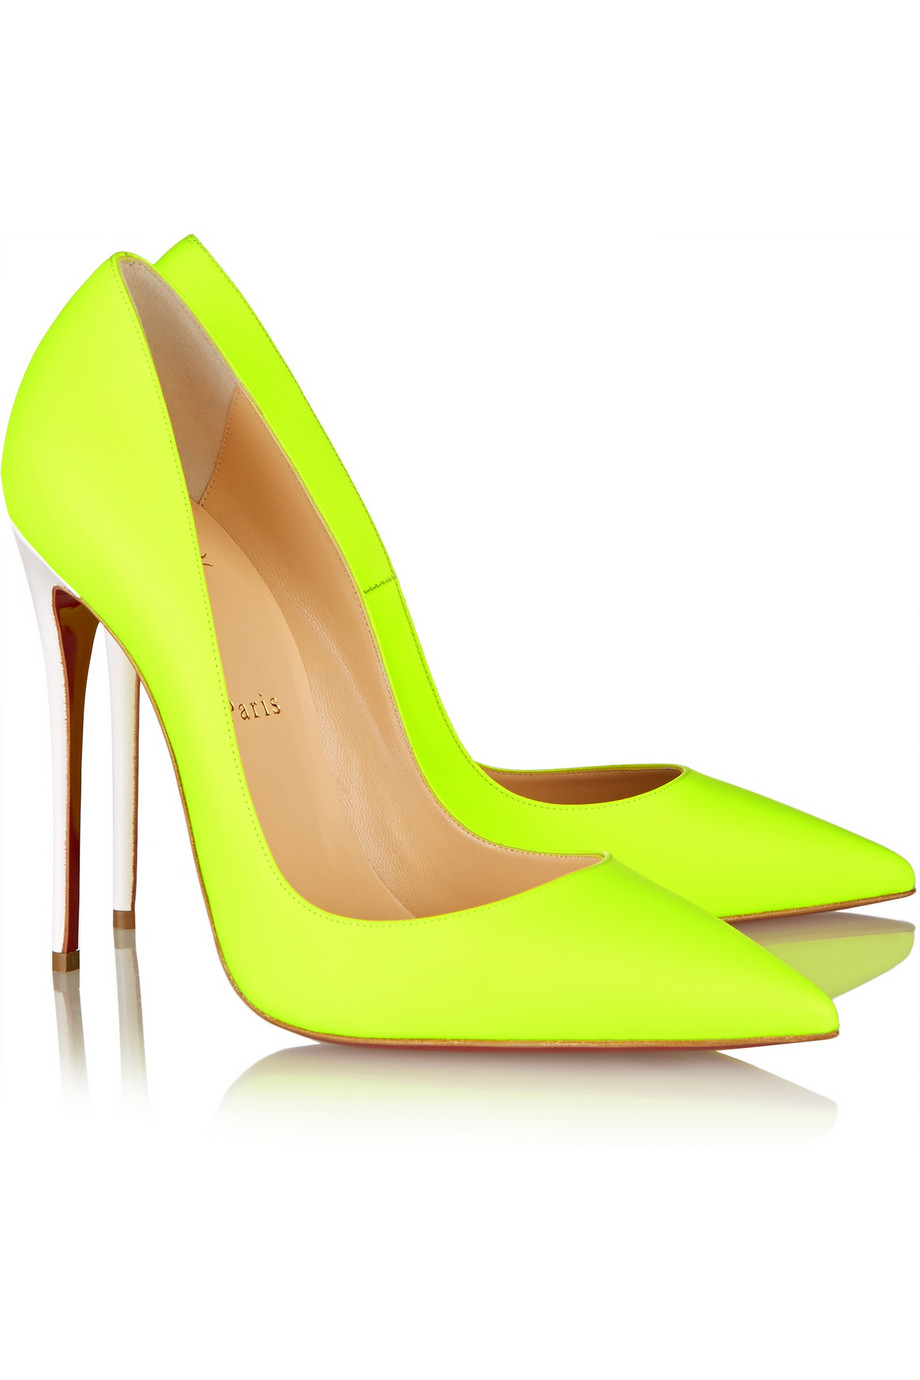 e09a12e9d8e6 Lyst - Christian Louboutin So Kate 120 Neon Leather Pumps in Yellow